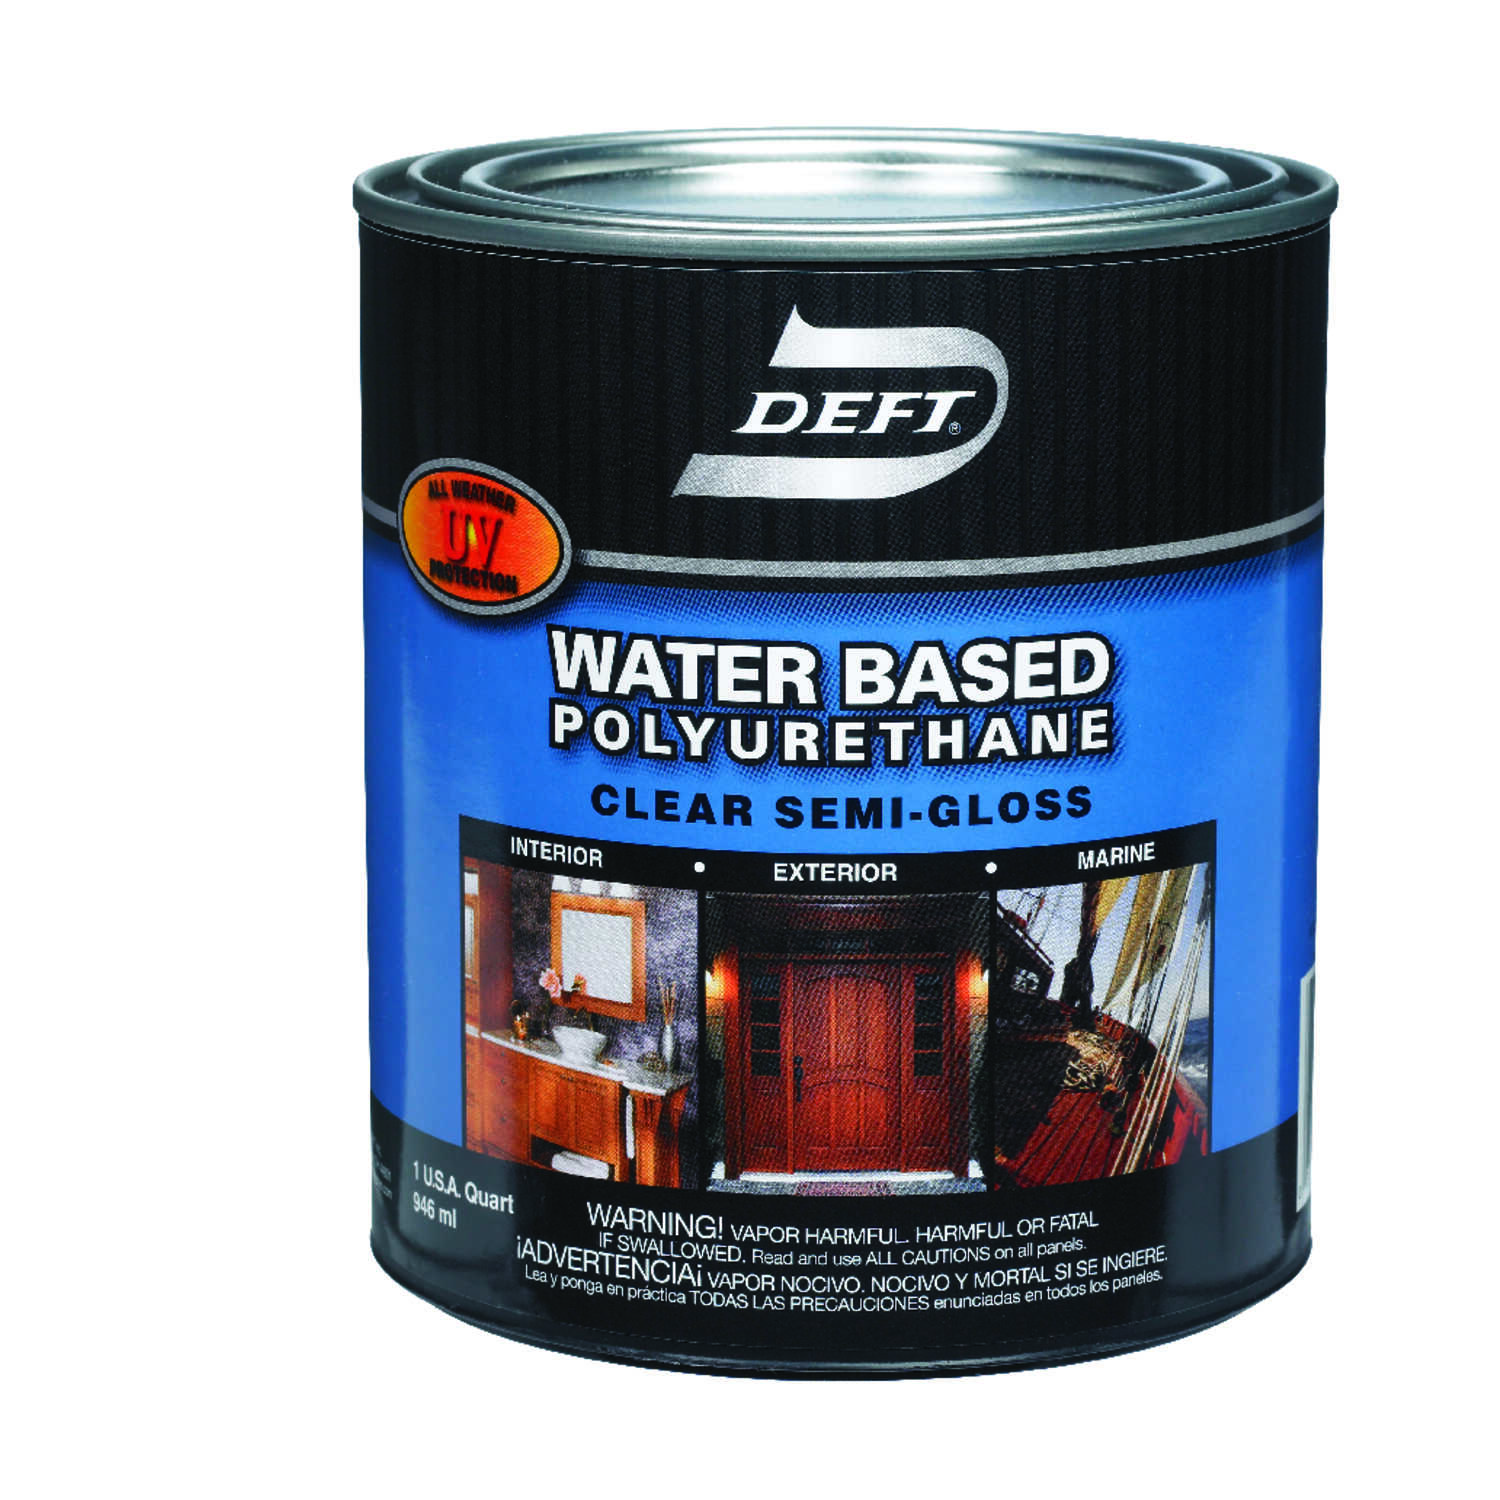 Deft  Water Based Polyurethane  Semi-Gloss  Clear  Waterborne Wood Finish  1 qt.